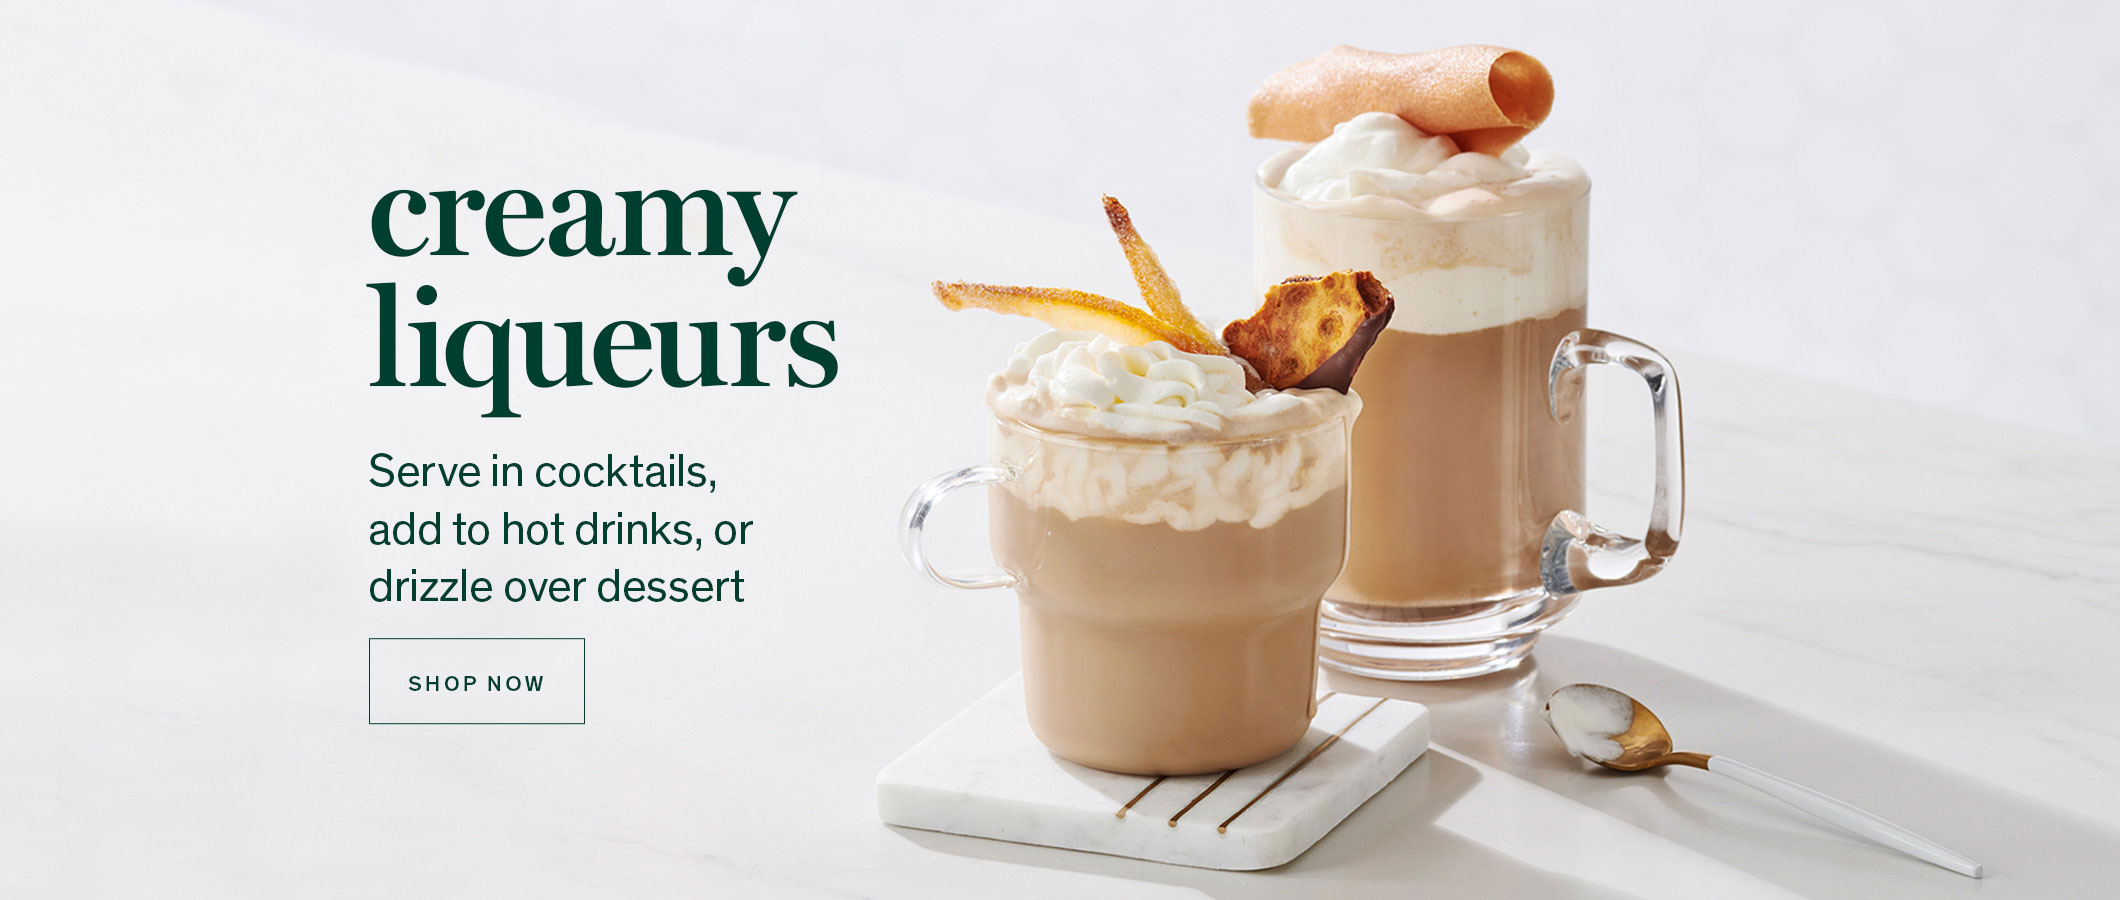 Creamy Liqueurs Serve in cocktails, add to hot drinks, or drizzle over dessert. SHOP NOW